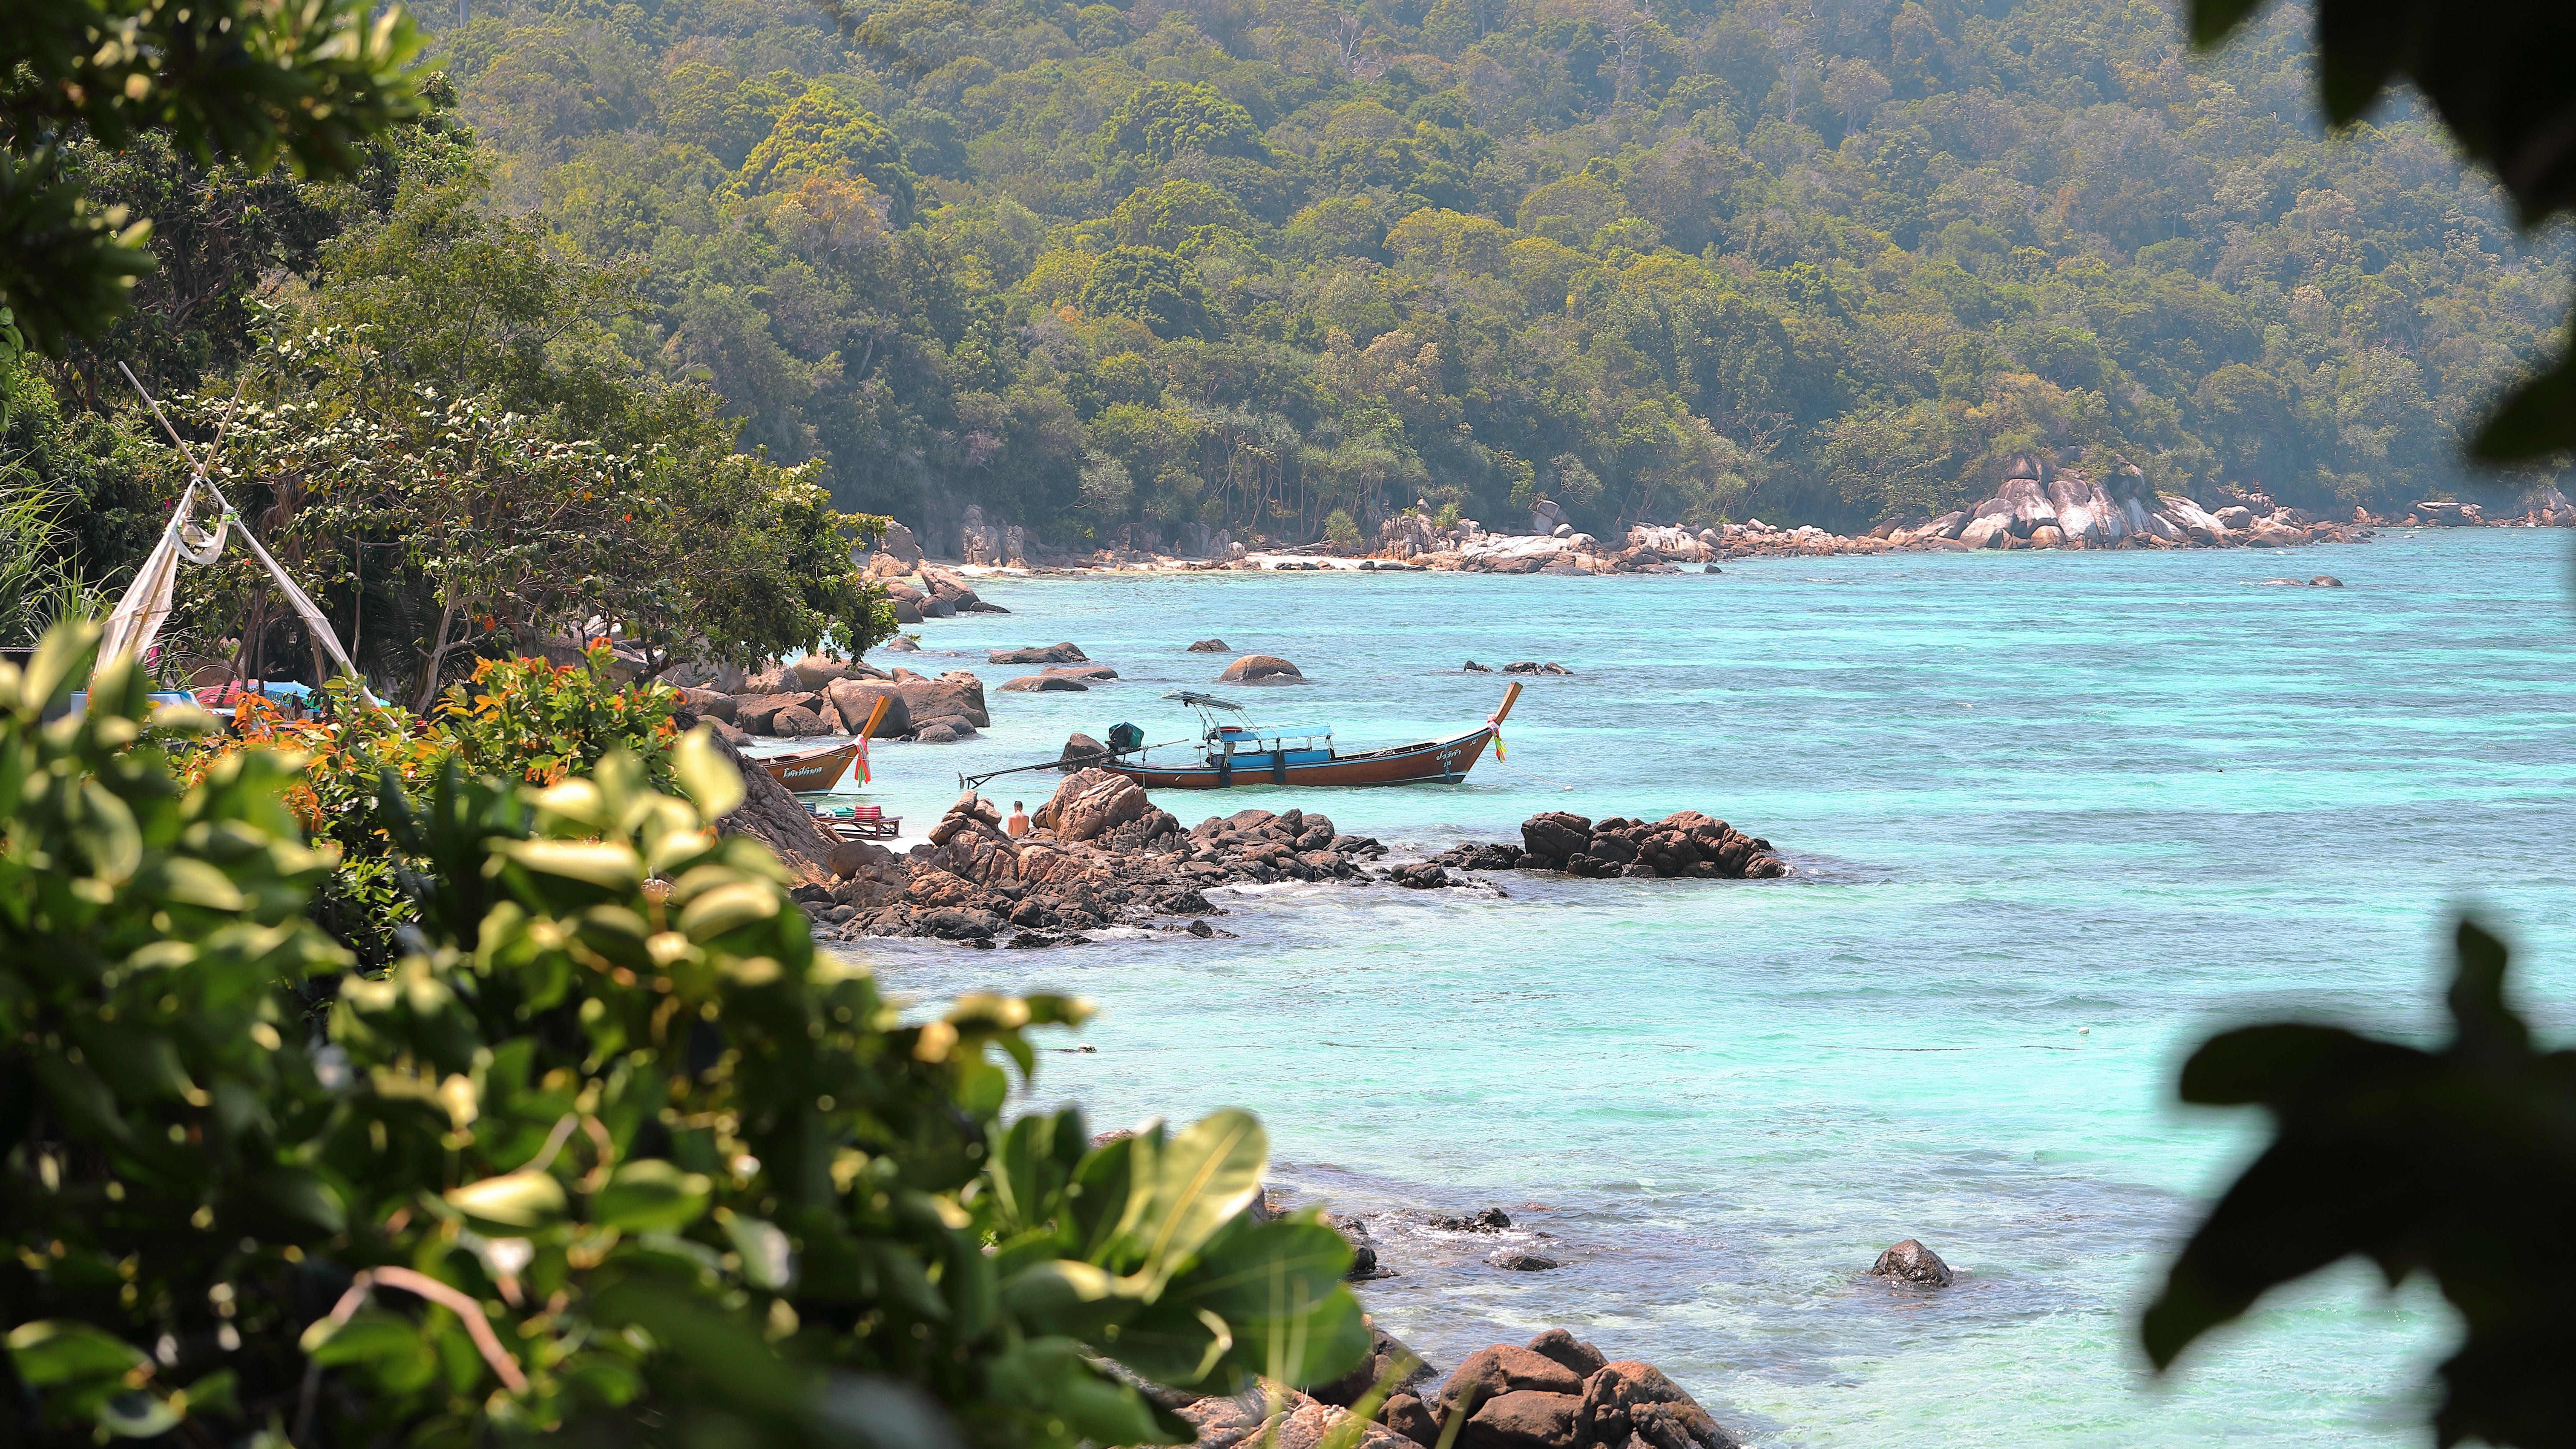 Koh Lipe turquoise water in Thailand